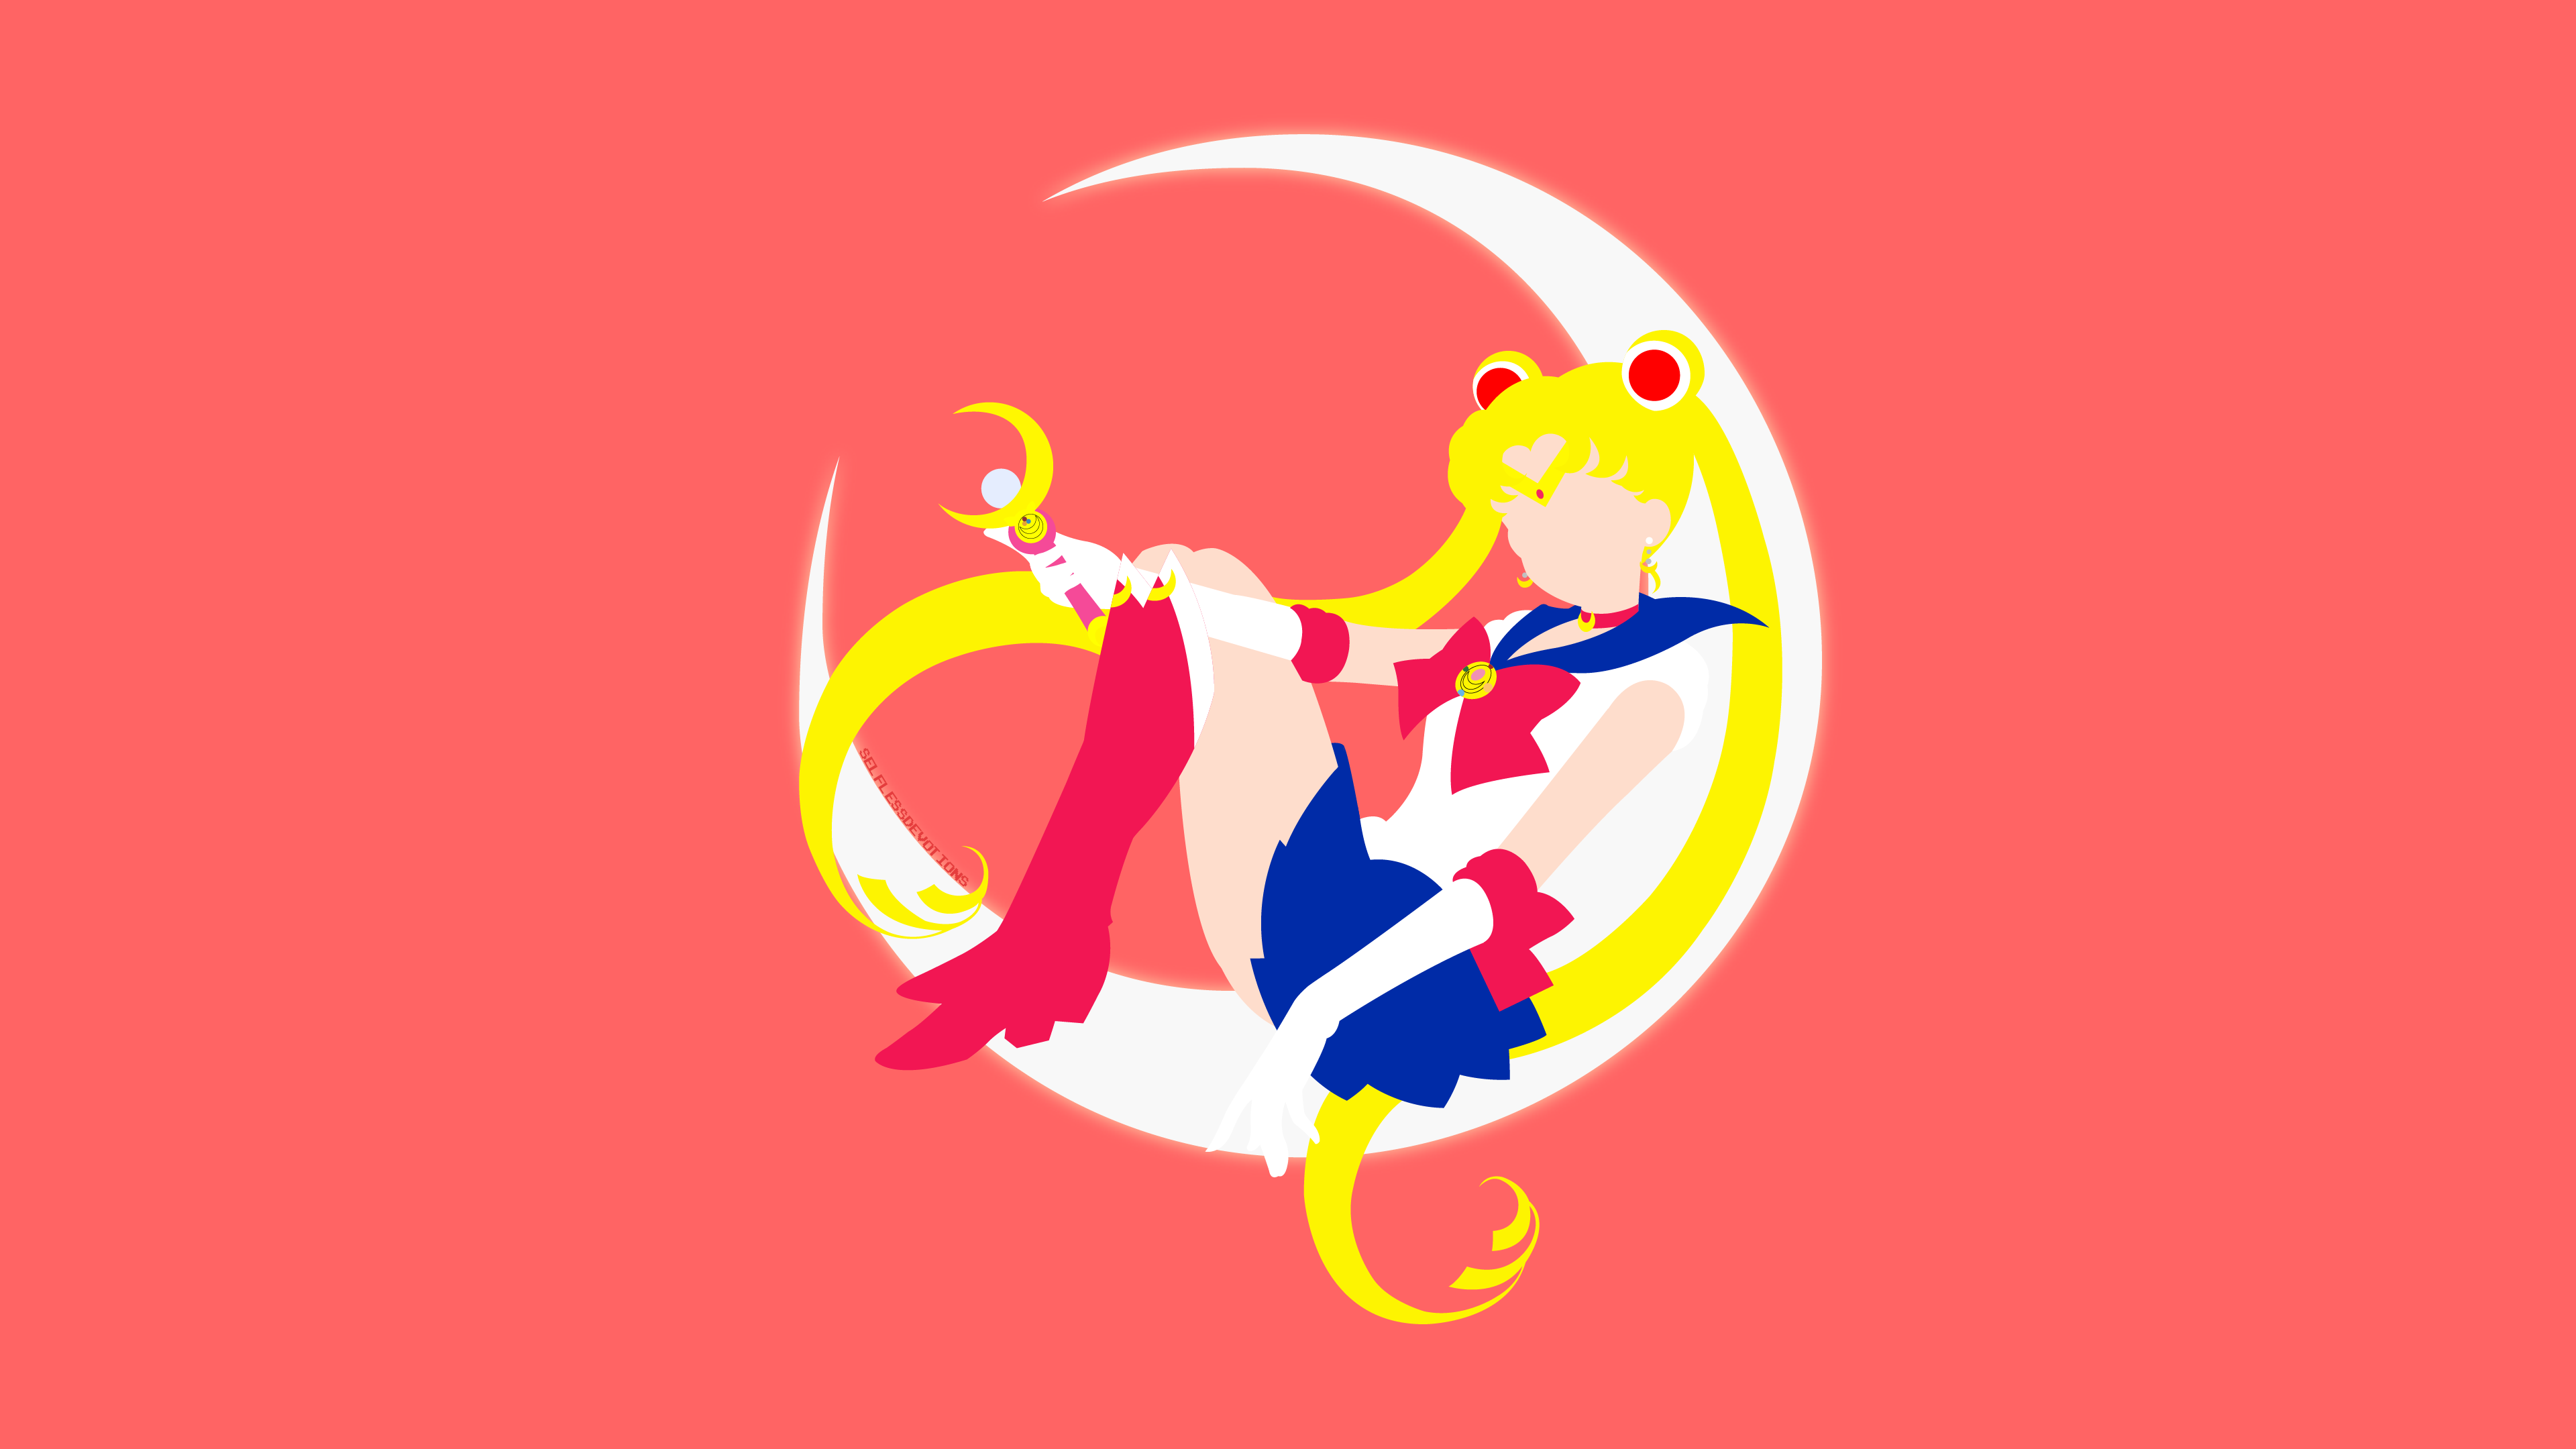 Sailor Moon Aesthetic Ps4 Wallpapers - Wallpaper Cave